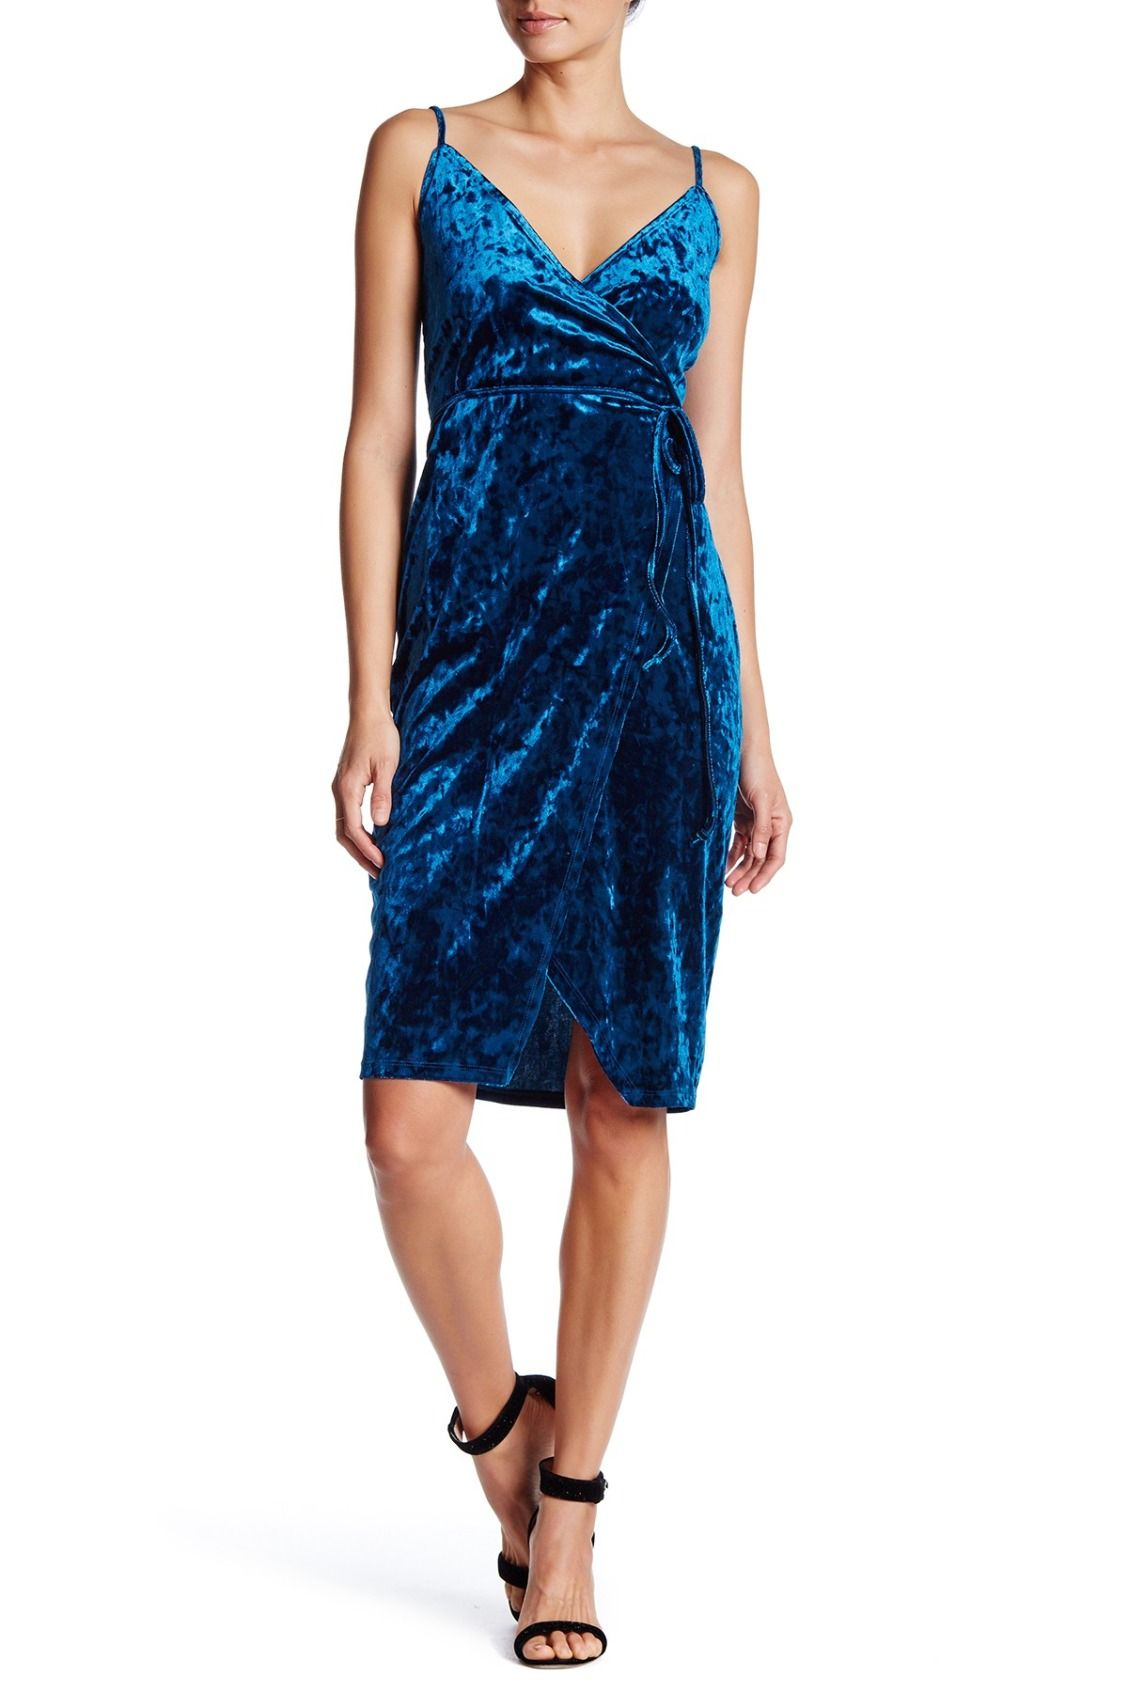 Crushing on this velvet blue dress perfect for new yearus eve